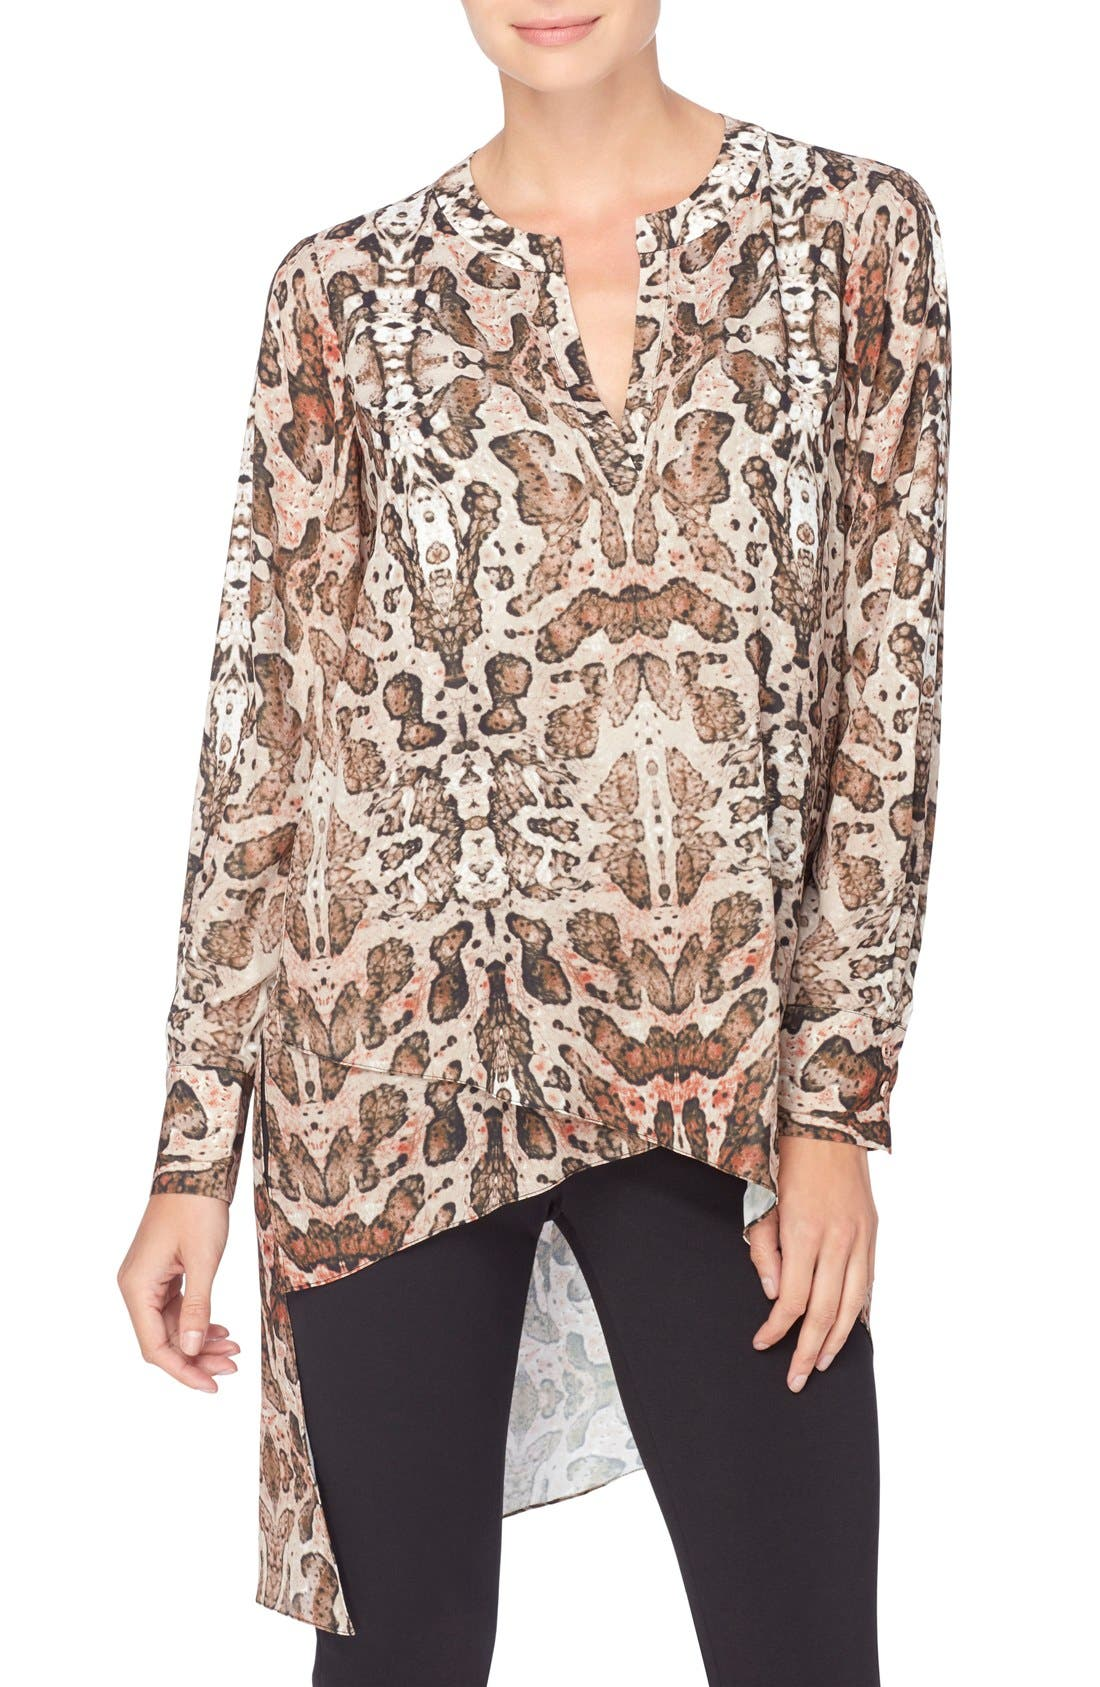 CATHERINE CATHERINE MALANDRINO 'Livy' High/Low Tunic Blouse